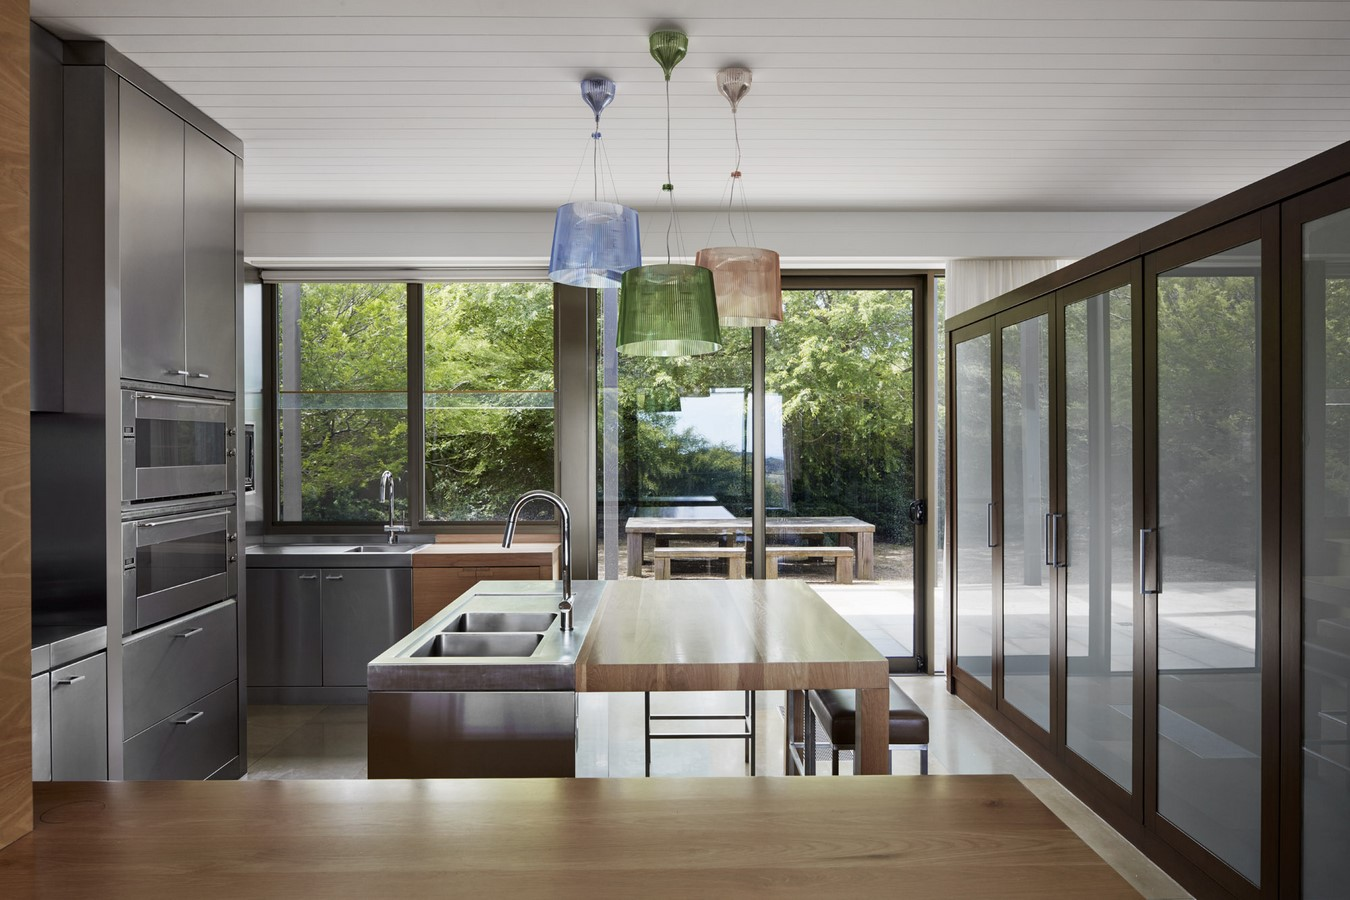 Meakins Road Residence by B.E Architecture - Sheet2